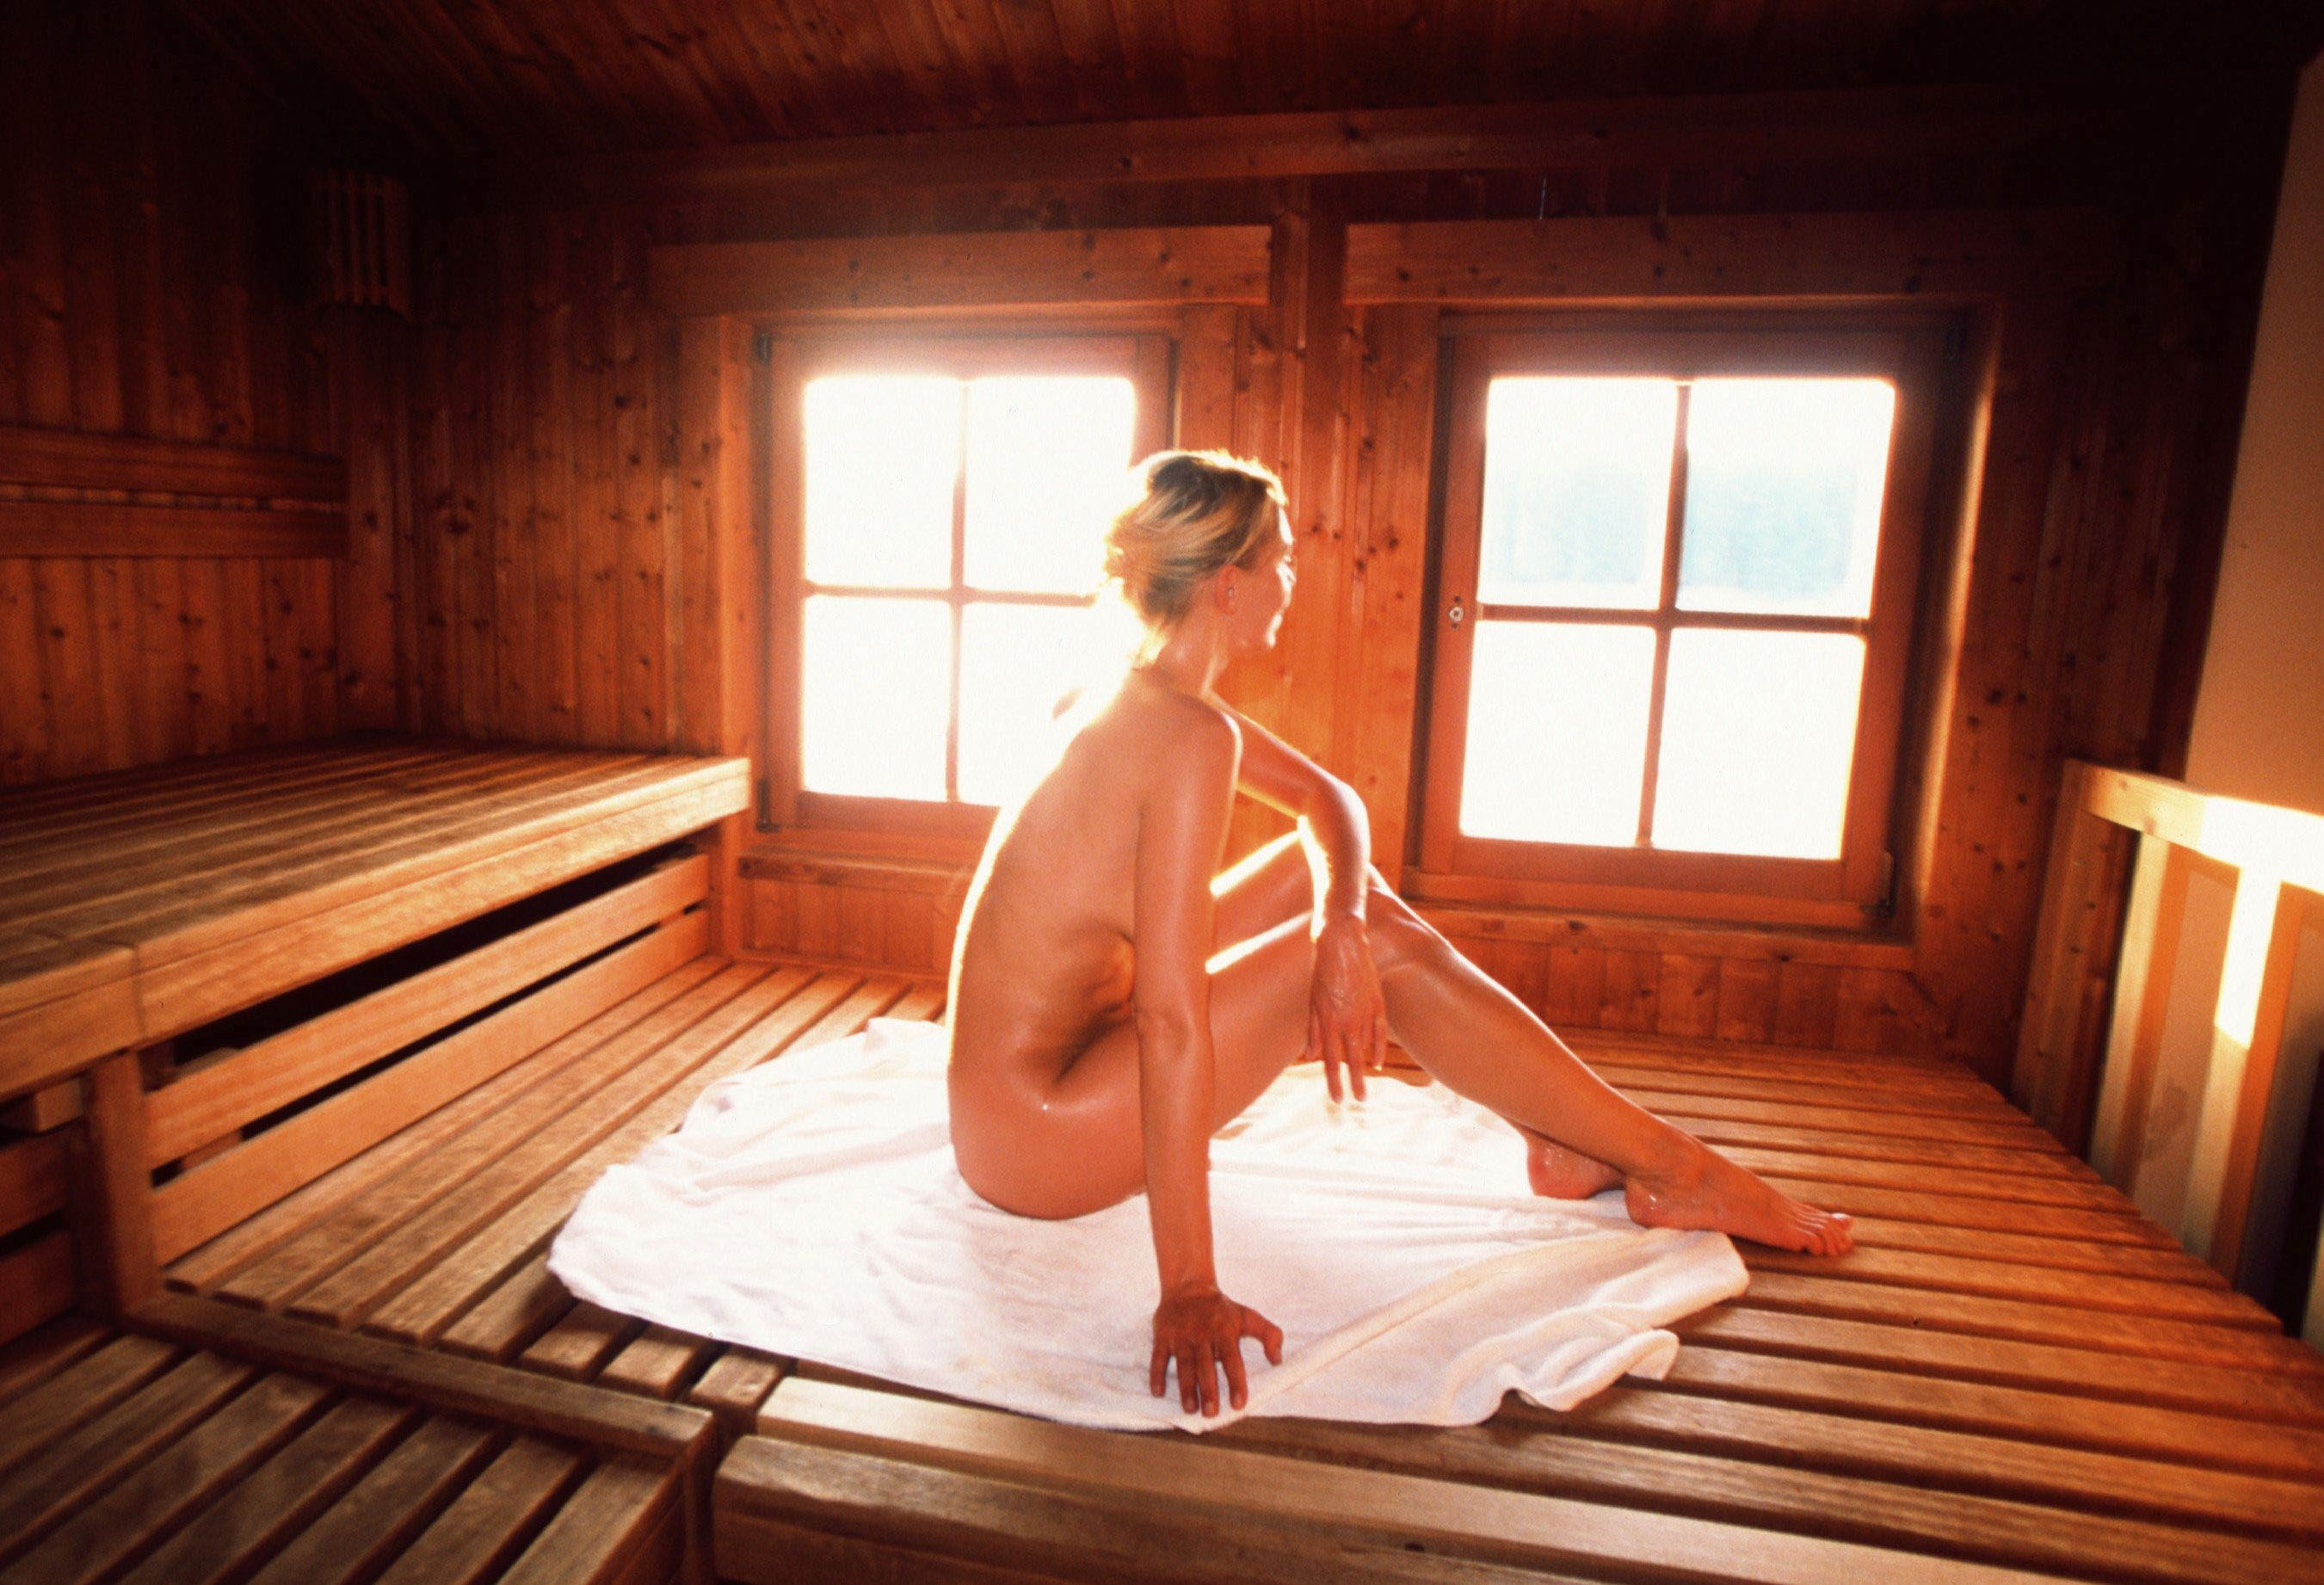 The best saunas to visit in helsinki, finland, and what to expect